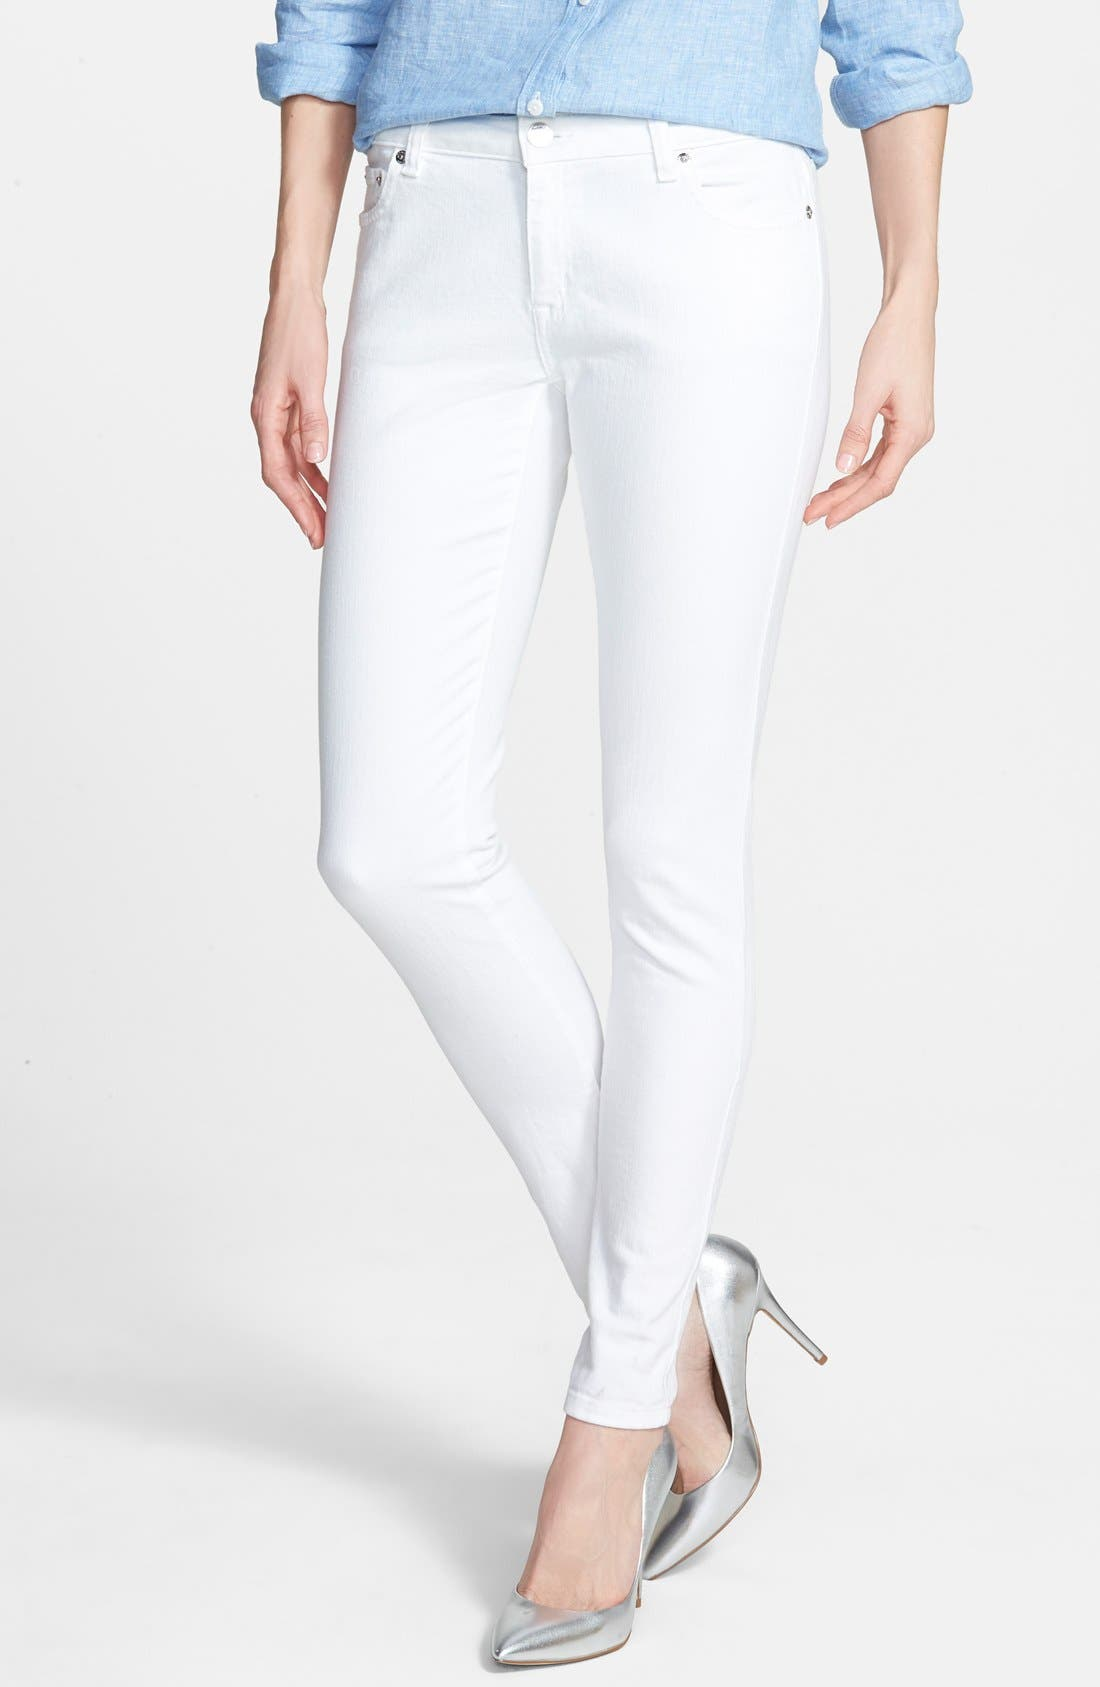 Alternate Image 1 Selected - MICHAEL Michael Kors White Skinny Jeans